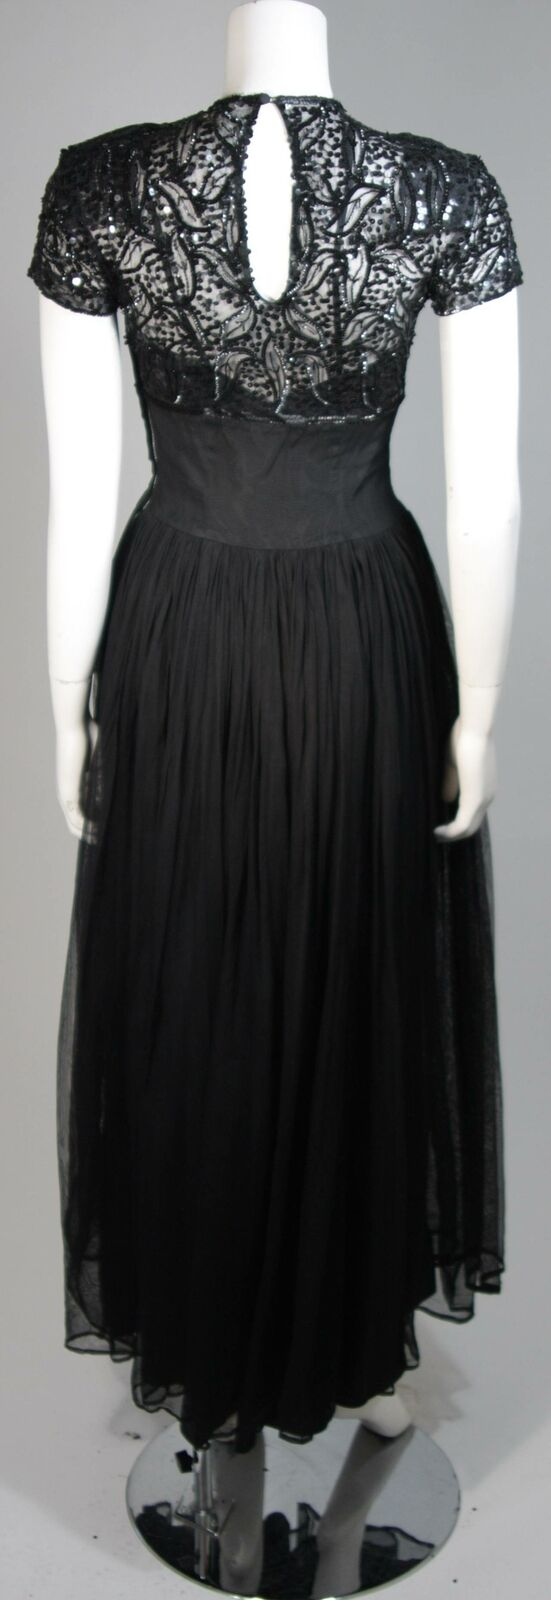 CEIL CHAPMAN Attributed Black Gown Size Small - image 9